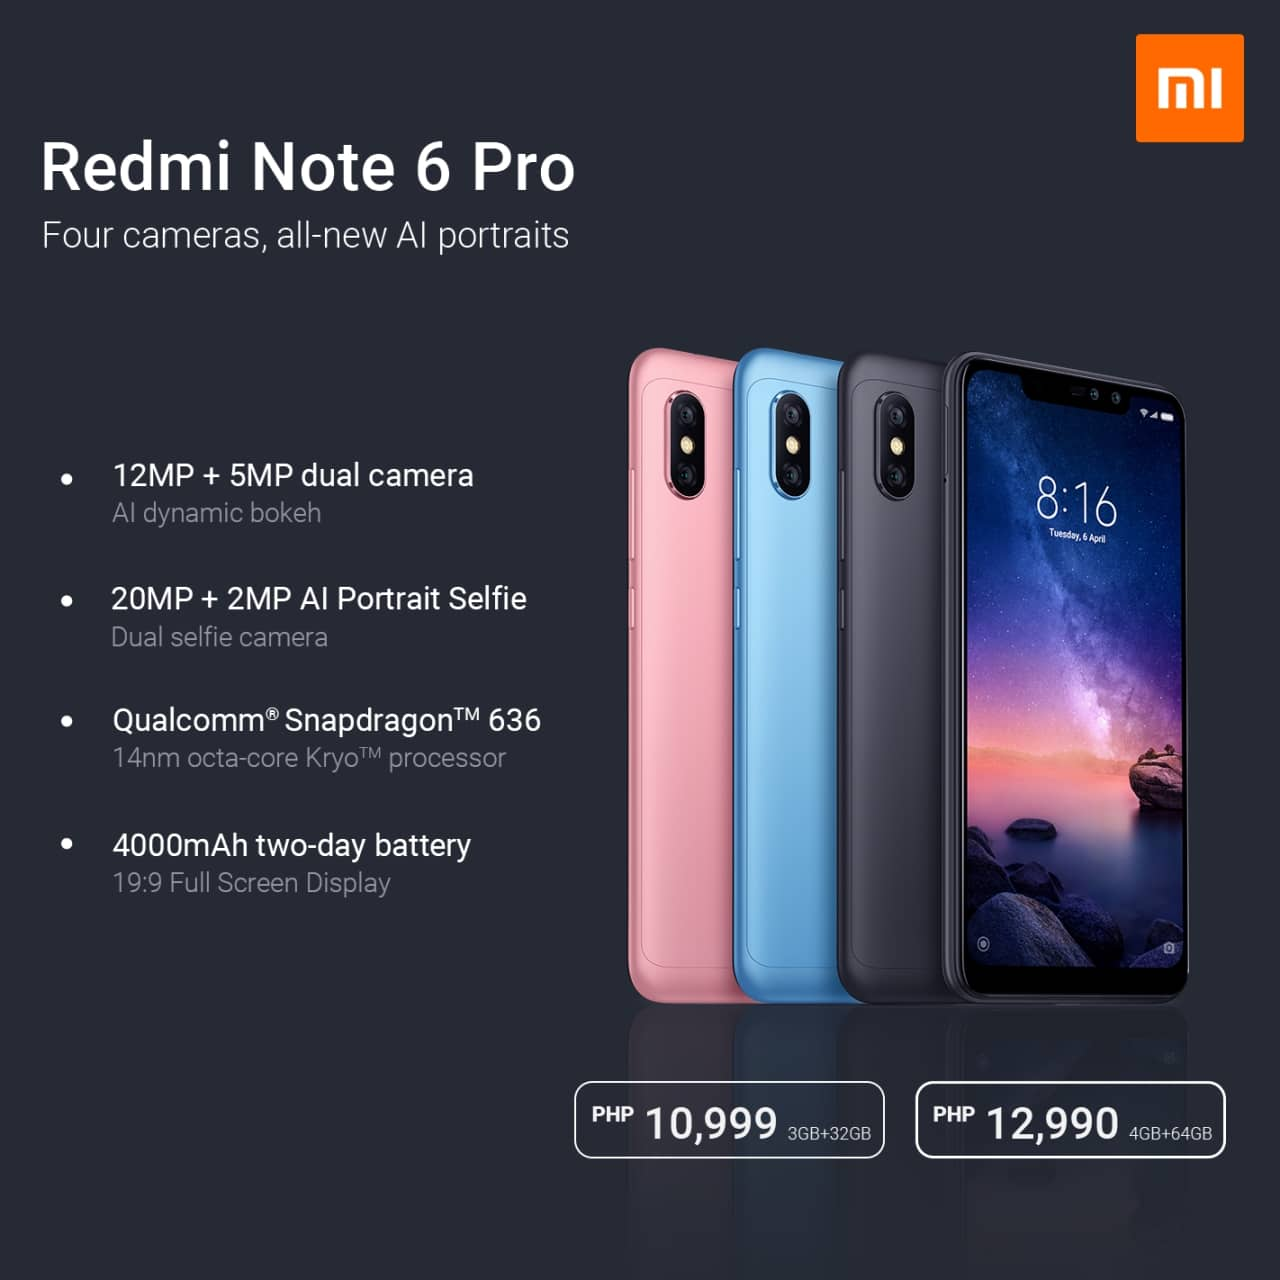 Xiaomi Redmi Note 6 Pro: Price and availability in the